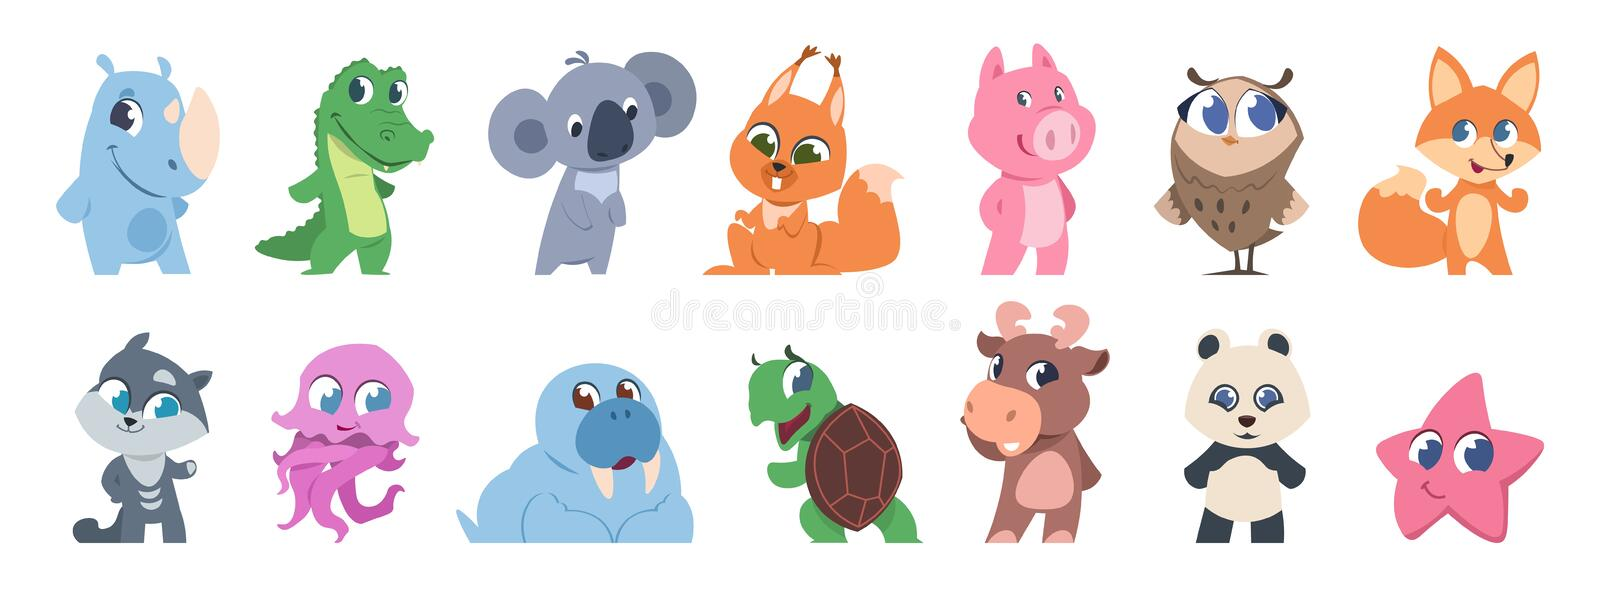 Cute animals. Cartoon baby pets and forest wild animals, fanny children characters. Vector baby animal set isolated on royalty free illustration